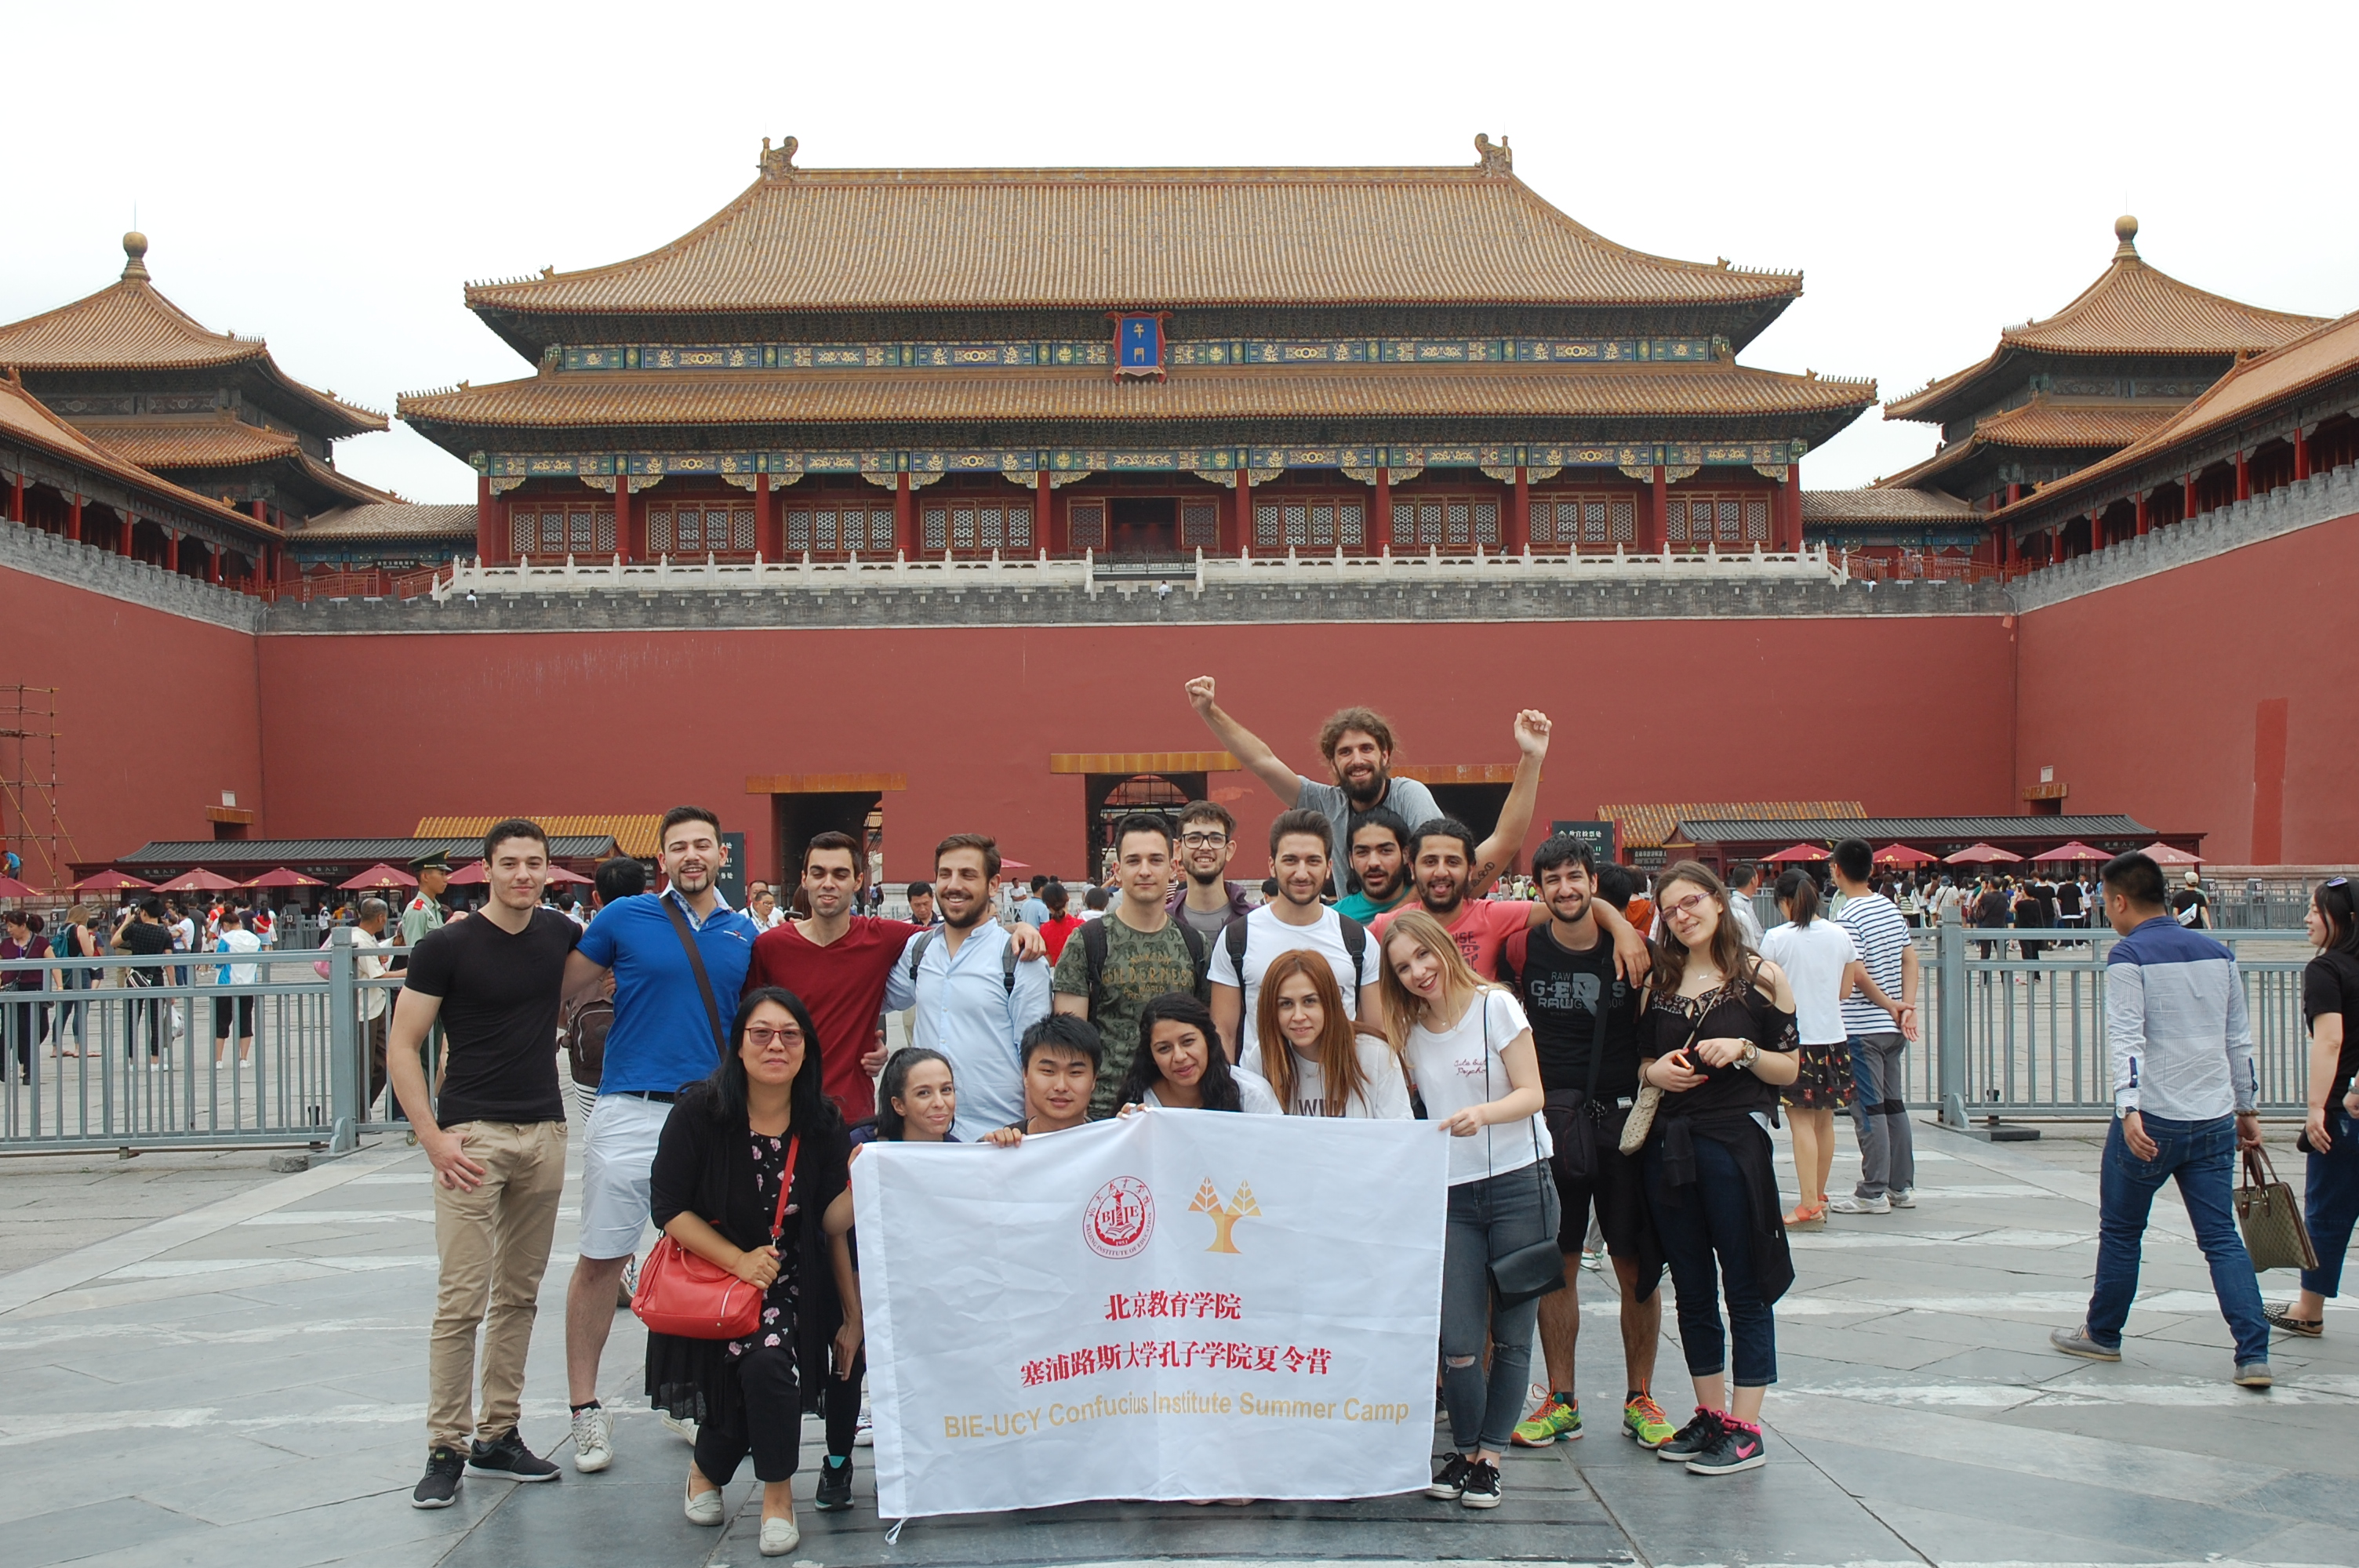 11 Visiting the Forbidden City